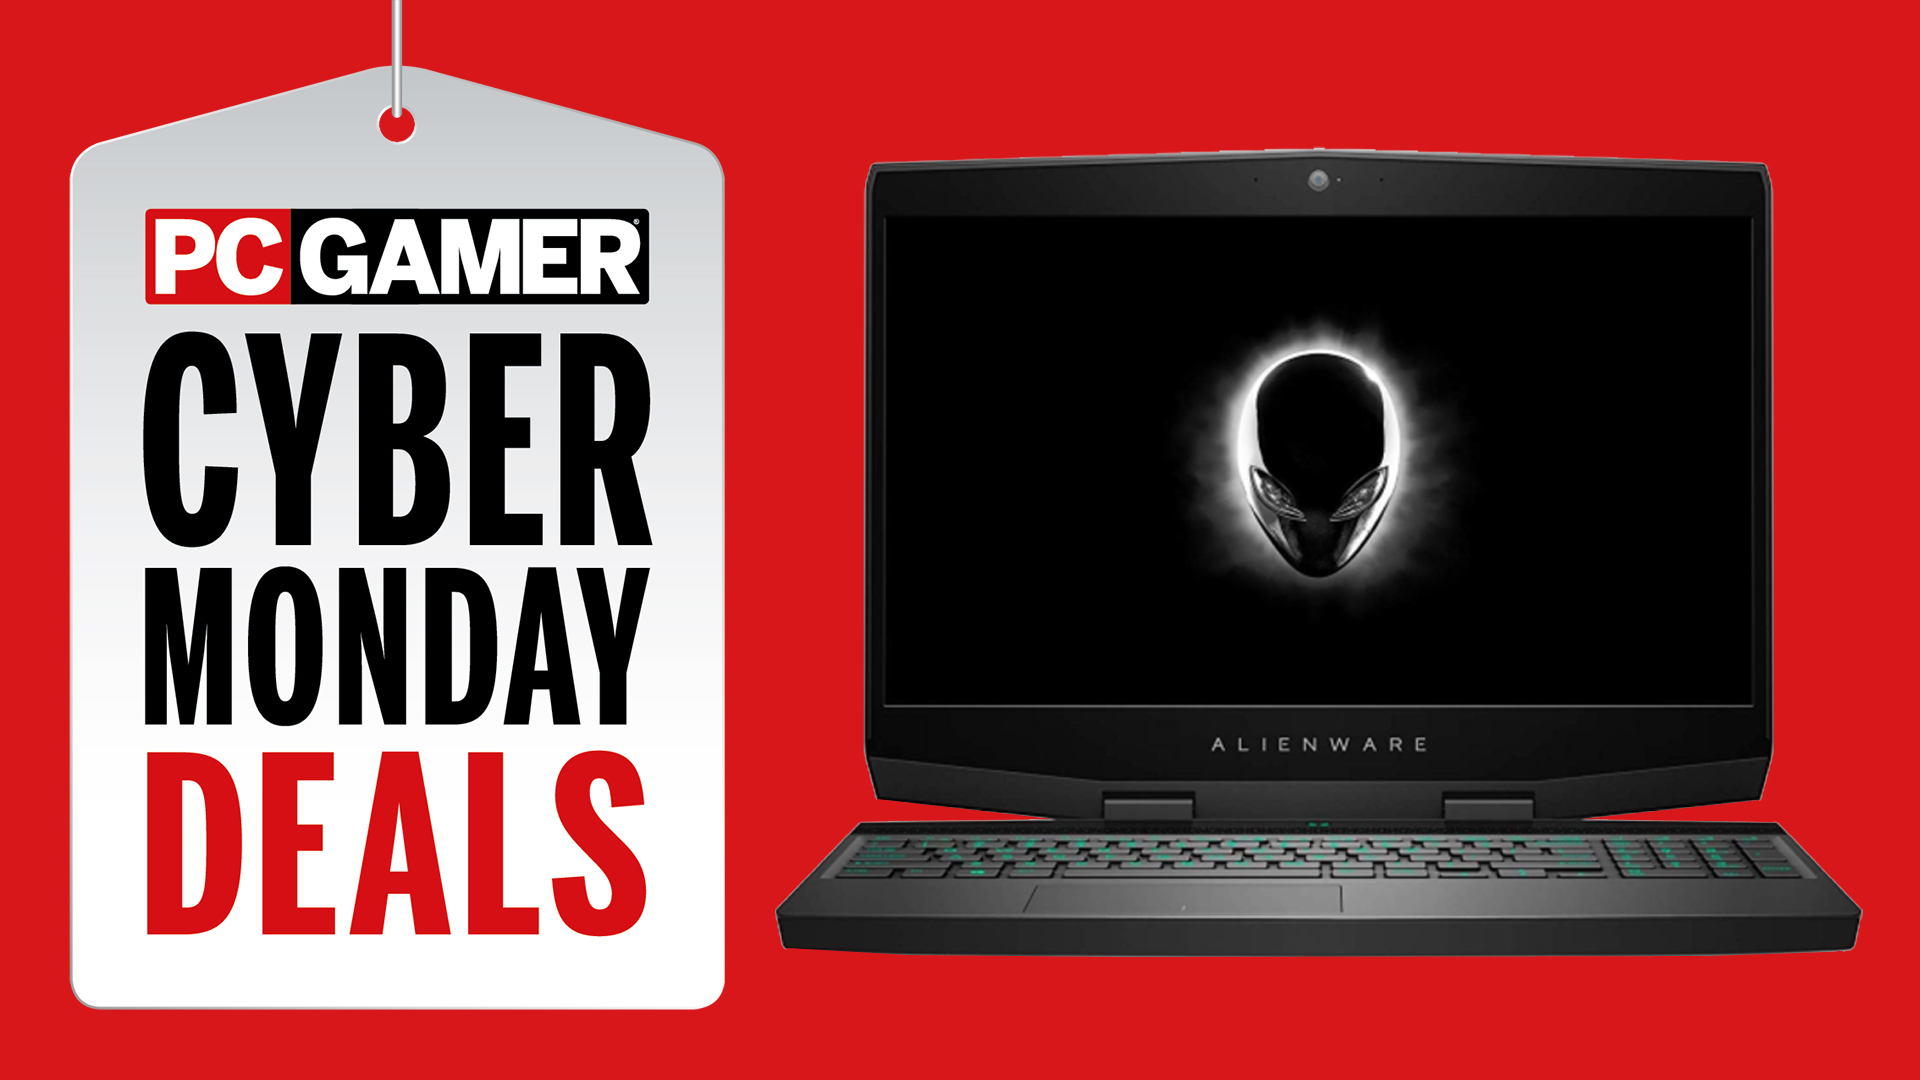 Dell Cyber Monday Deals 2019 Gaming Pcs Laptops And More Pc Gamer